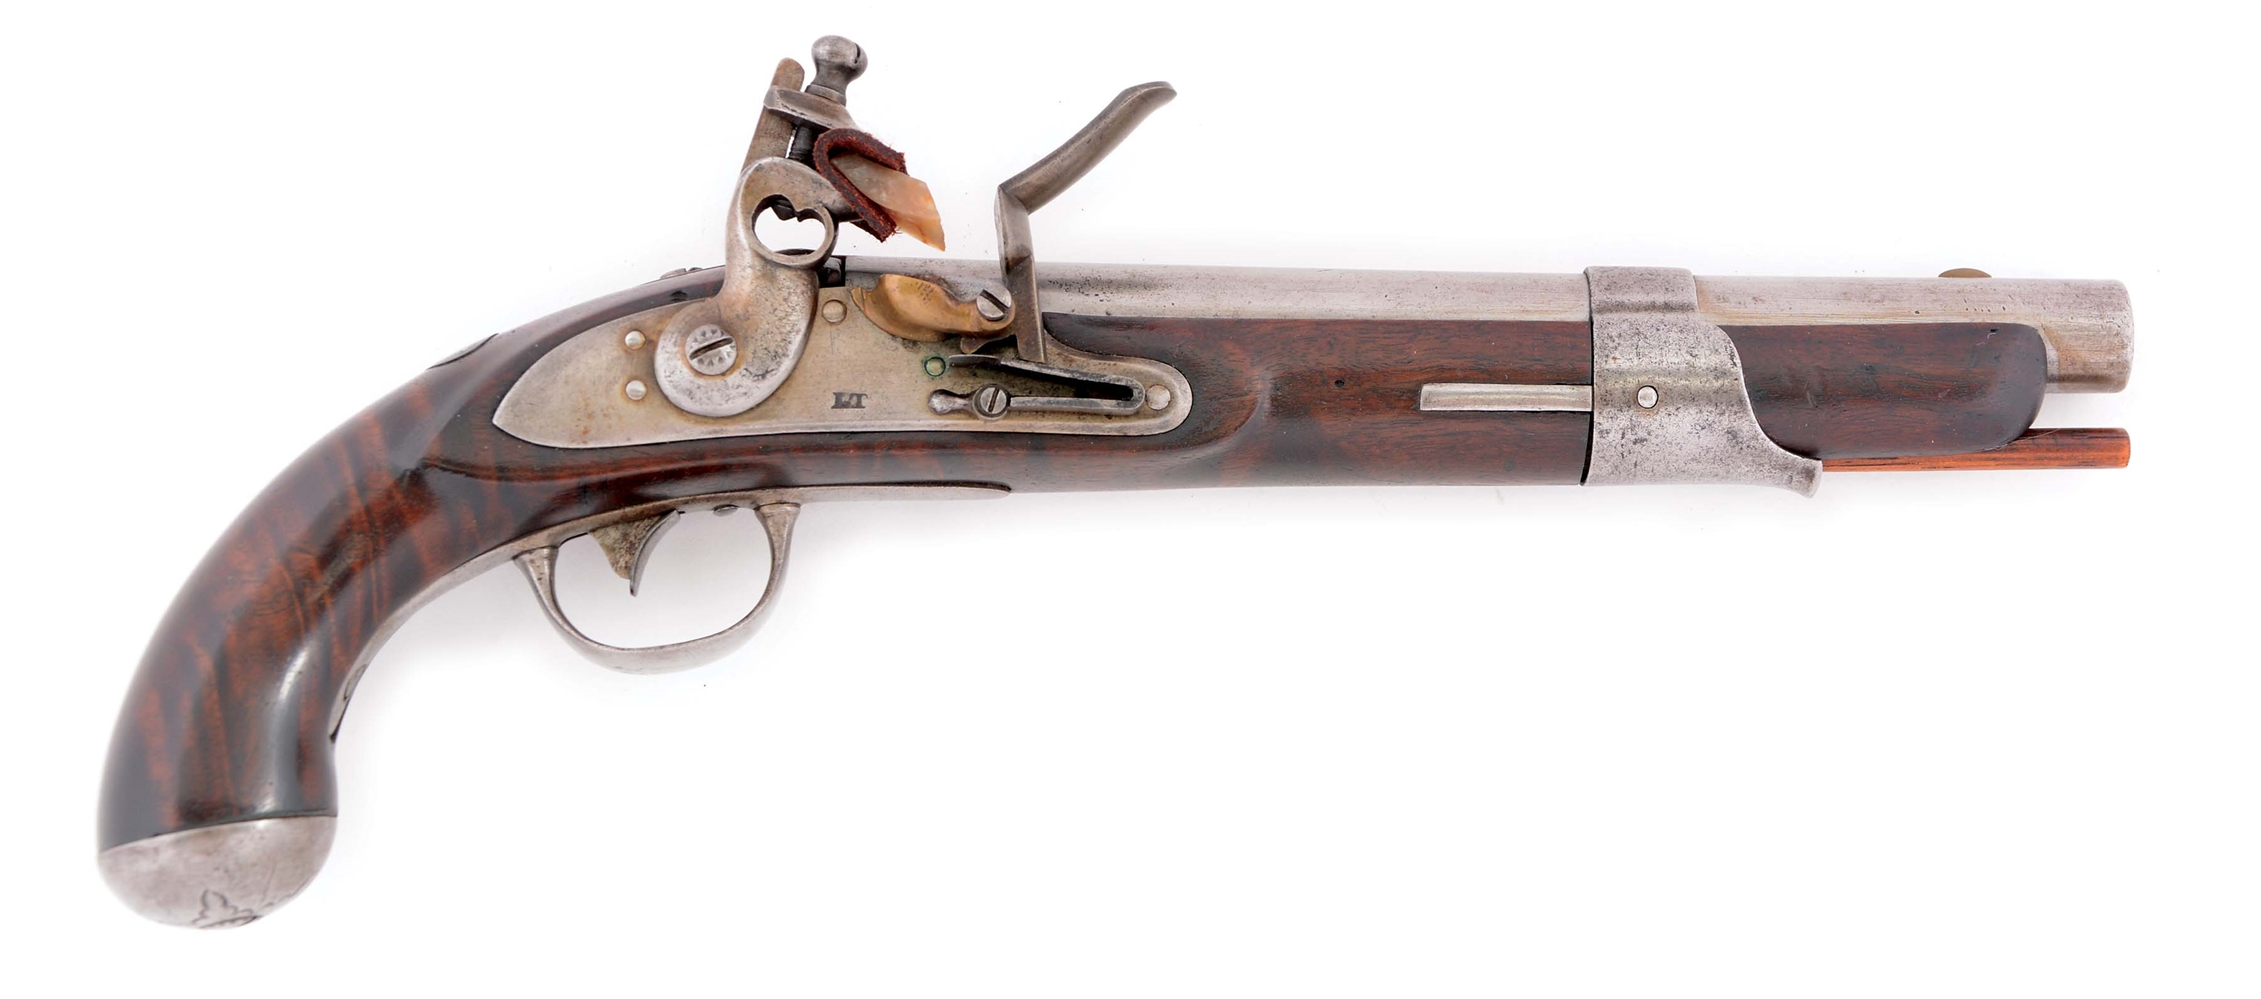 (A) RARE POSSIBLY UNIQUE AMERICAN FLINTLOCK SINGLE SHOT PISTOL, WITH A DISTINGUISHED PROVENANCE, MADE FROM PARTS OF AN 1826 NORTH NAVY.